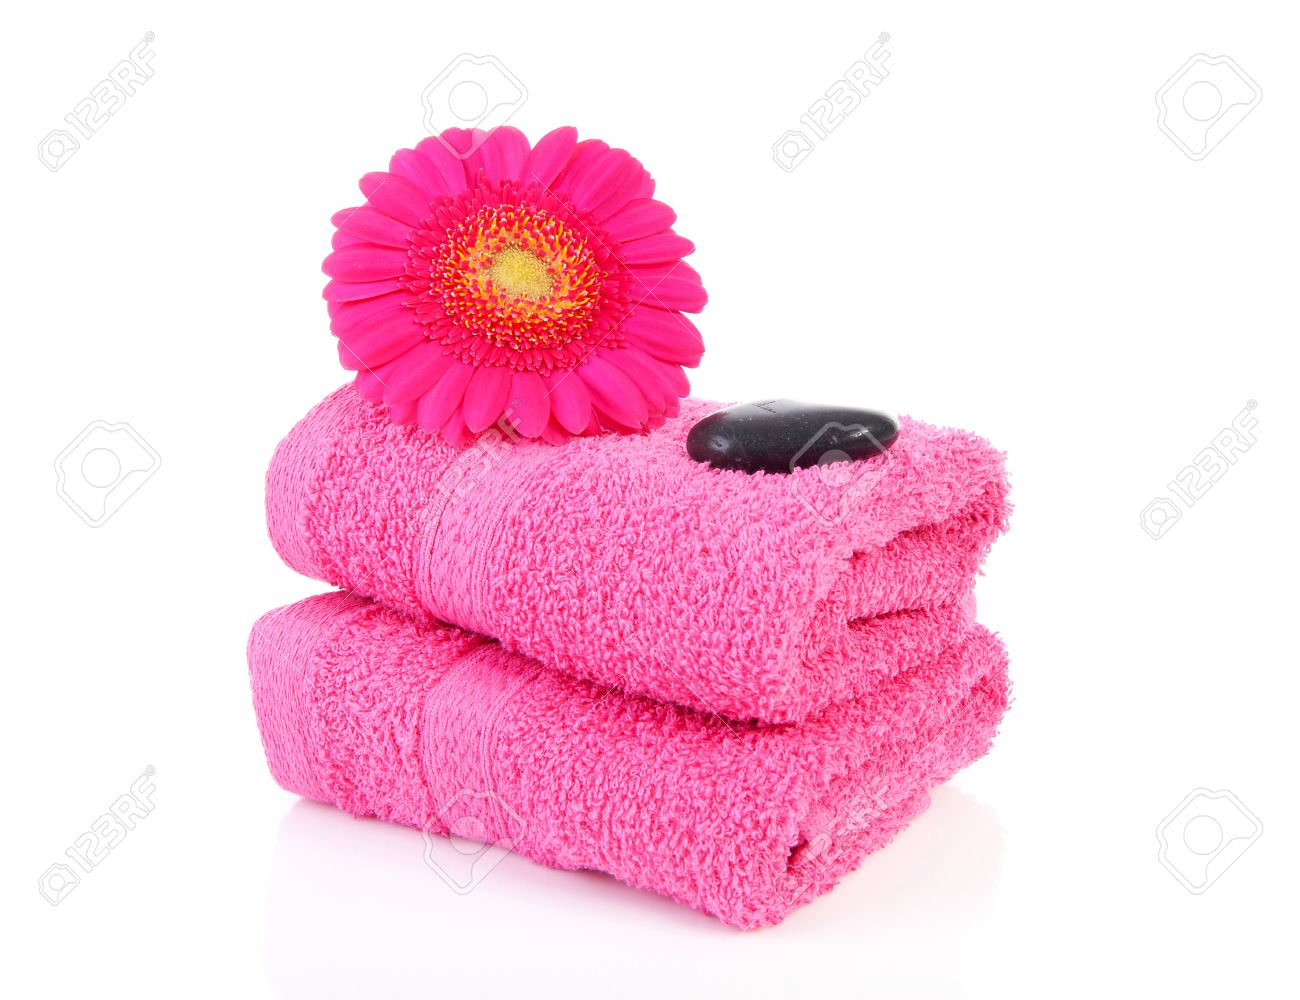 Pink and white bathroom accessories - Pink Bathroom Accessories With Towel Stones And Gerber Flower Over White Background Stock Photo